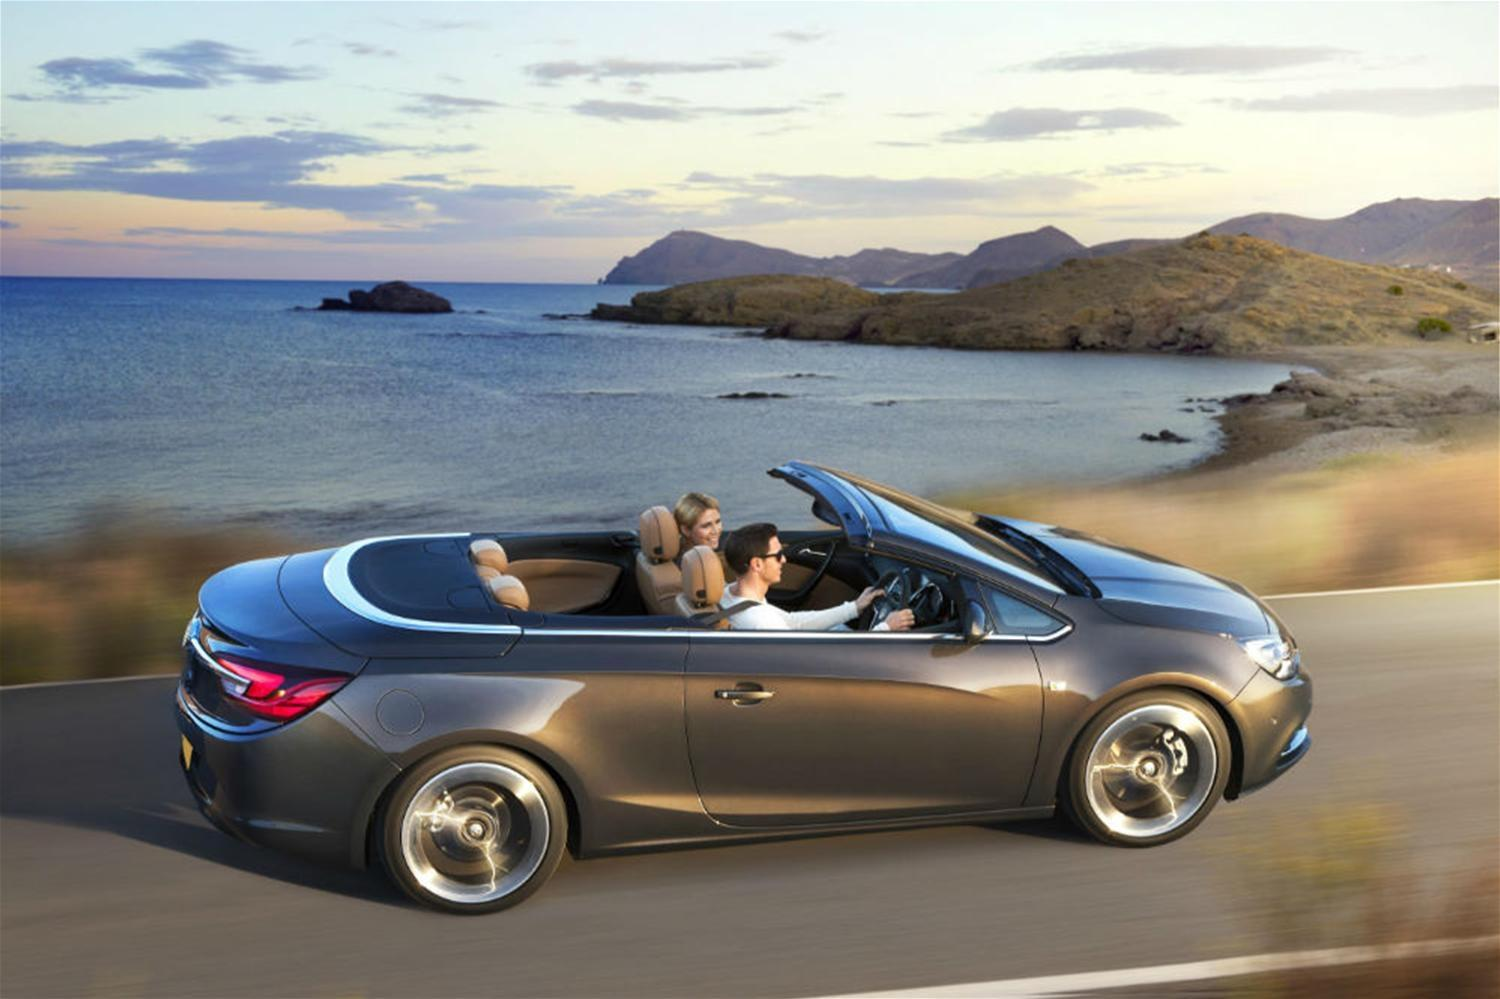 New Vauxhall Cascada convertible revealed